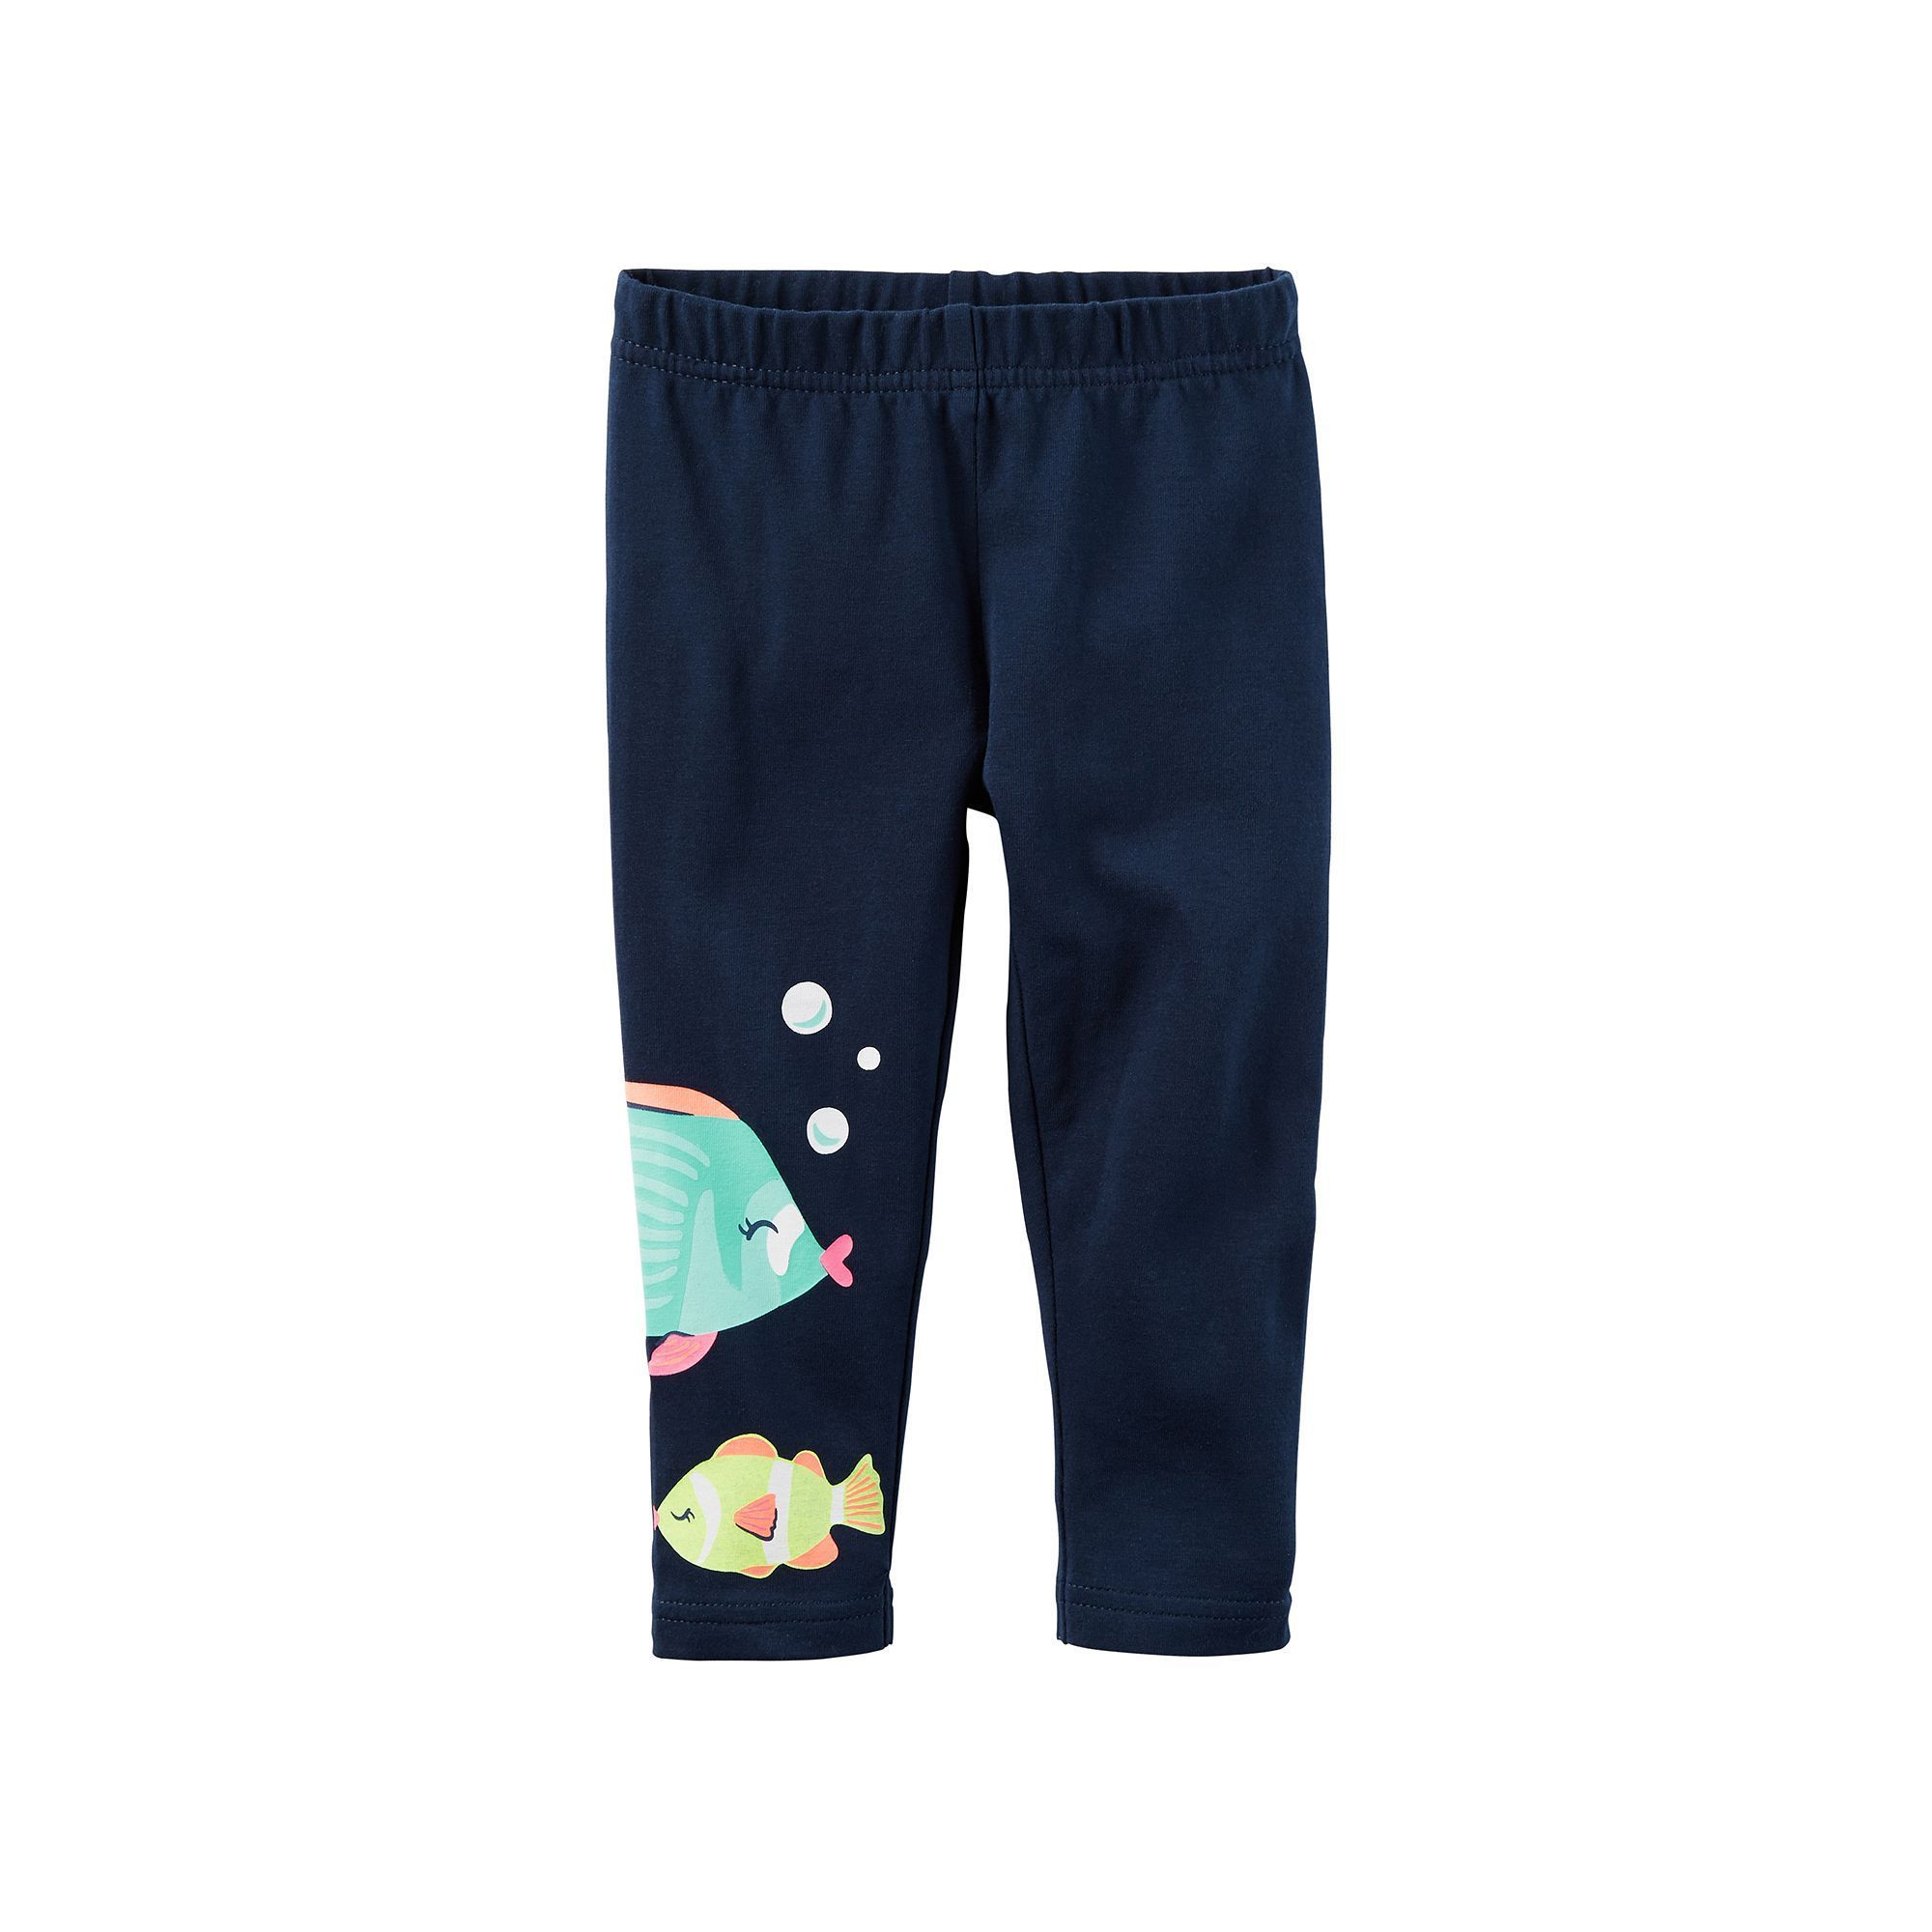 NEW Carter/'s French Terry Pants Girls Patch NWT 18m 3T 4T 5T 6 7 8 Blue Joggers